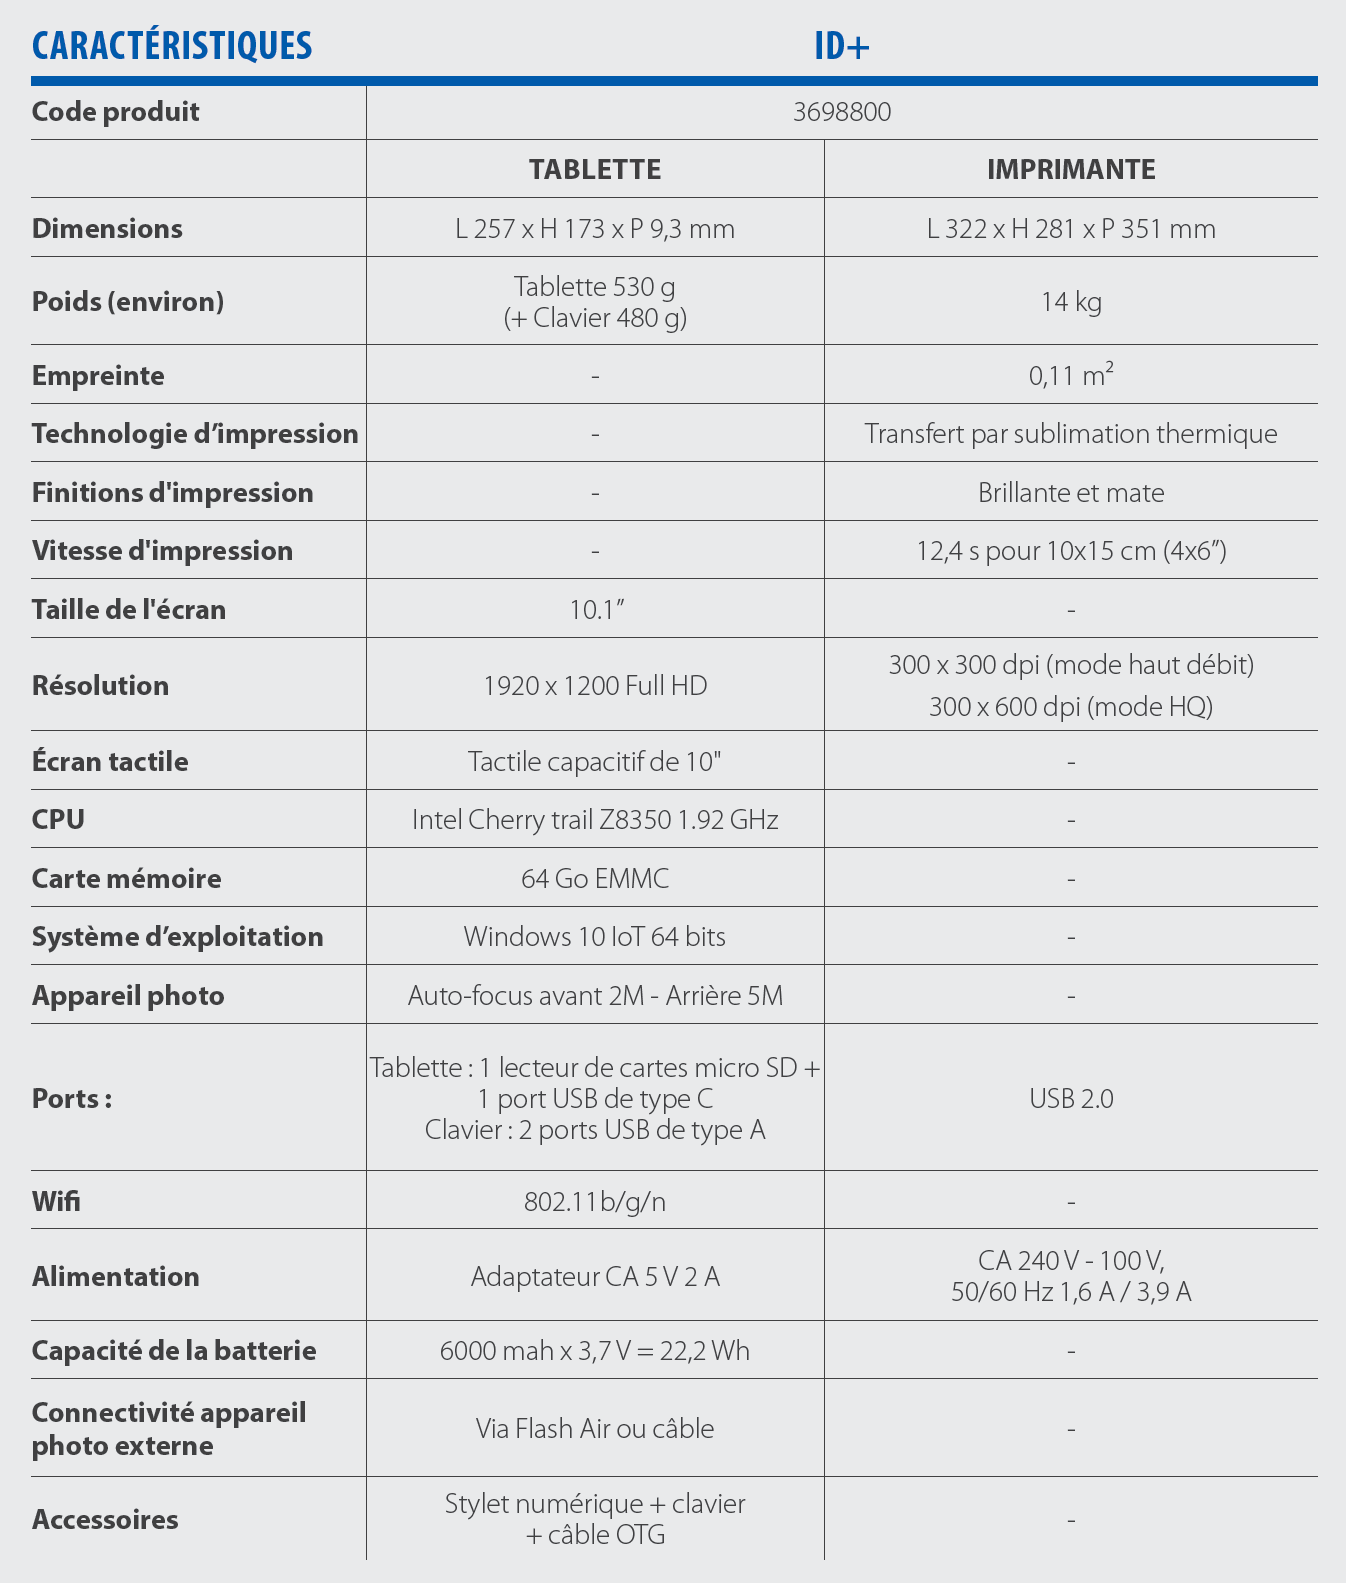 ID specifications FR